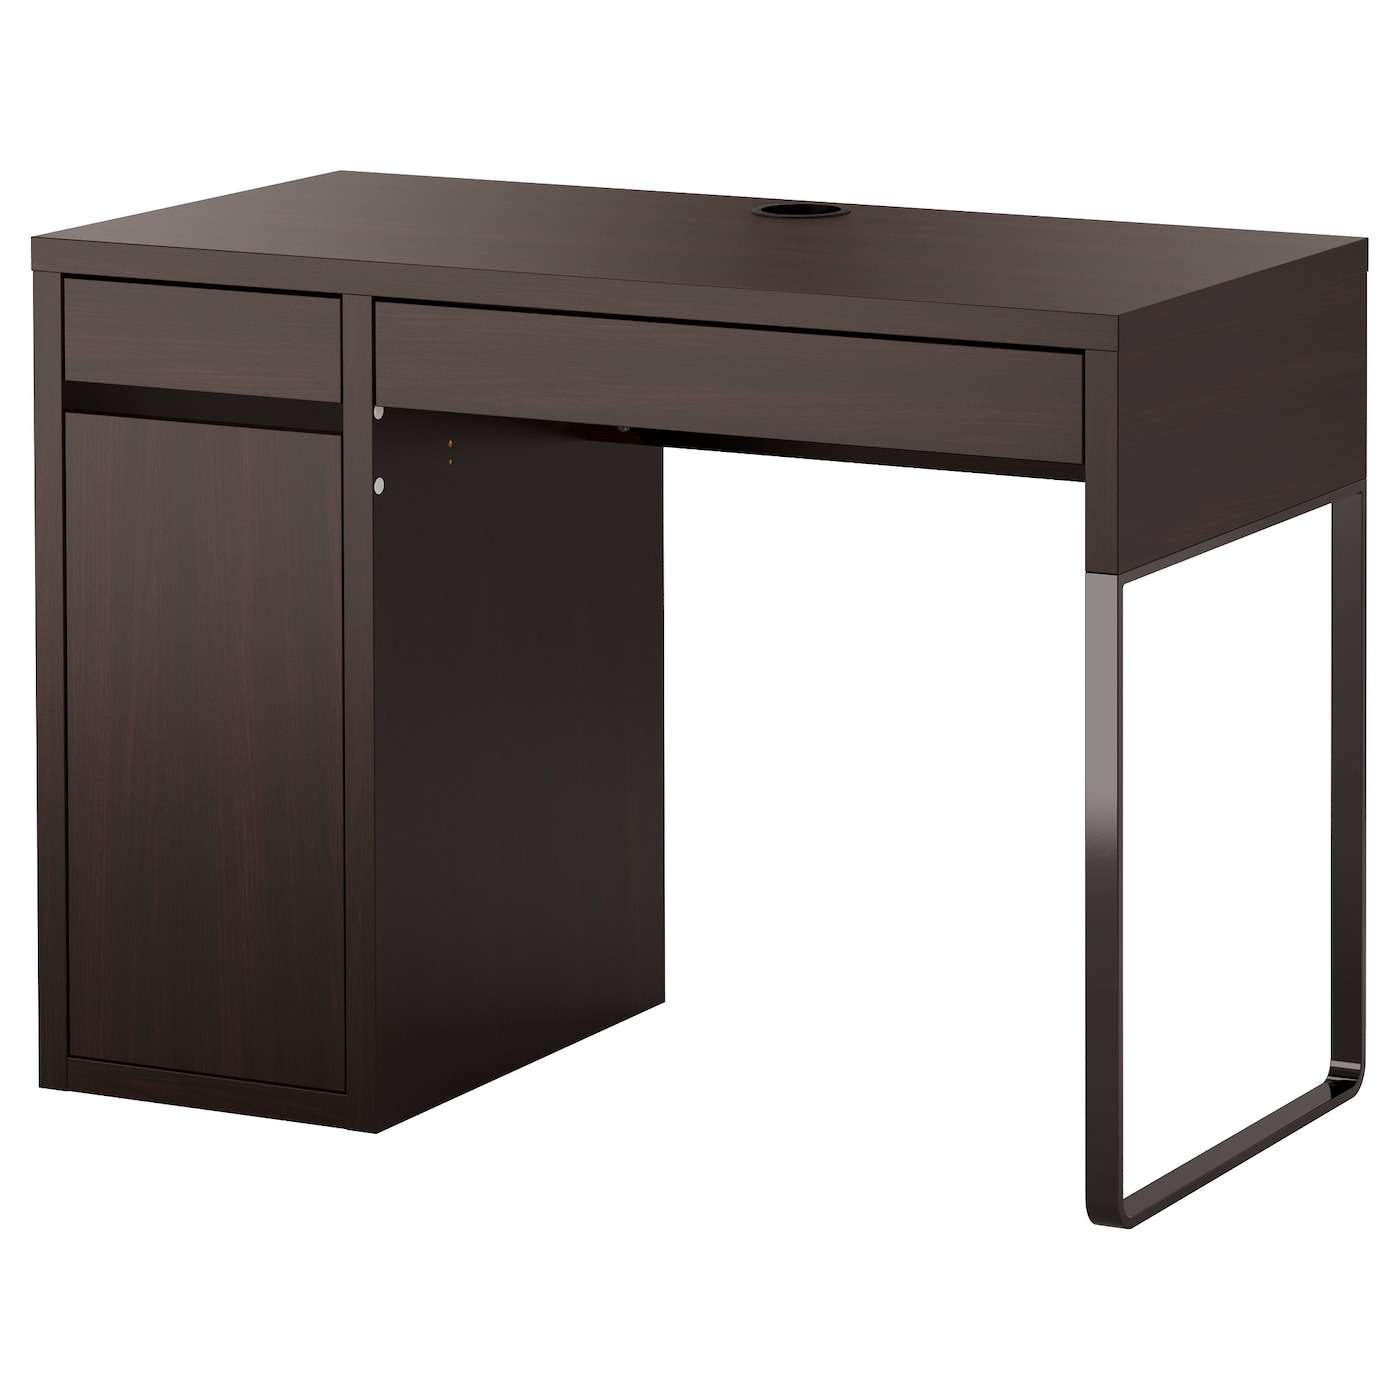 Micke Desk Blackbrown 105 X 50 Cm  Ikea. Sit Stand Computer Desk. Front Desk Receptionist Salary Hourly. Secretarial Desk. Ping Pong Tables On Sale. Computer Desks With Hutch. Console Table Computer Desk. Map Drawers Cabinet. Help Desk Template